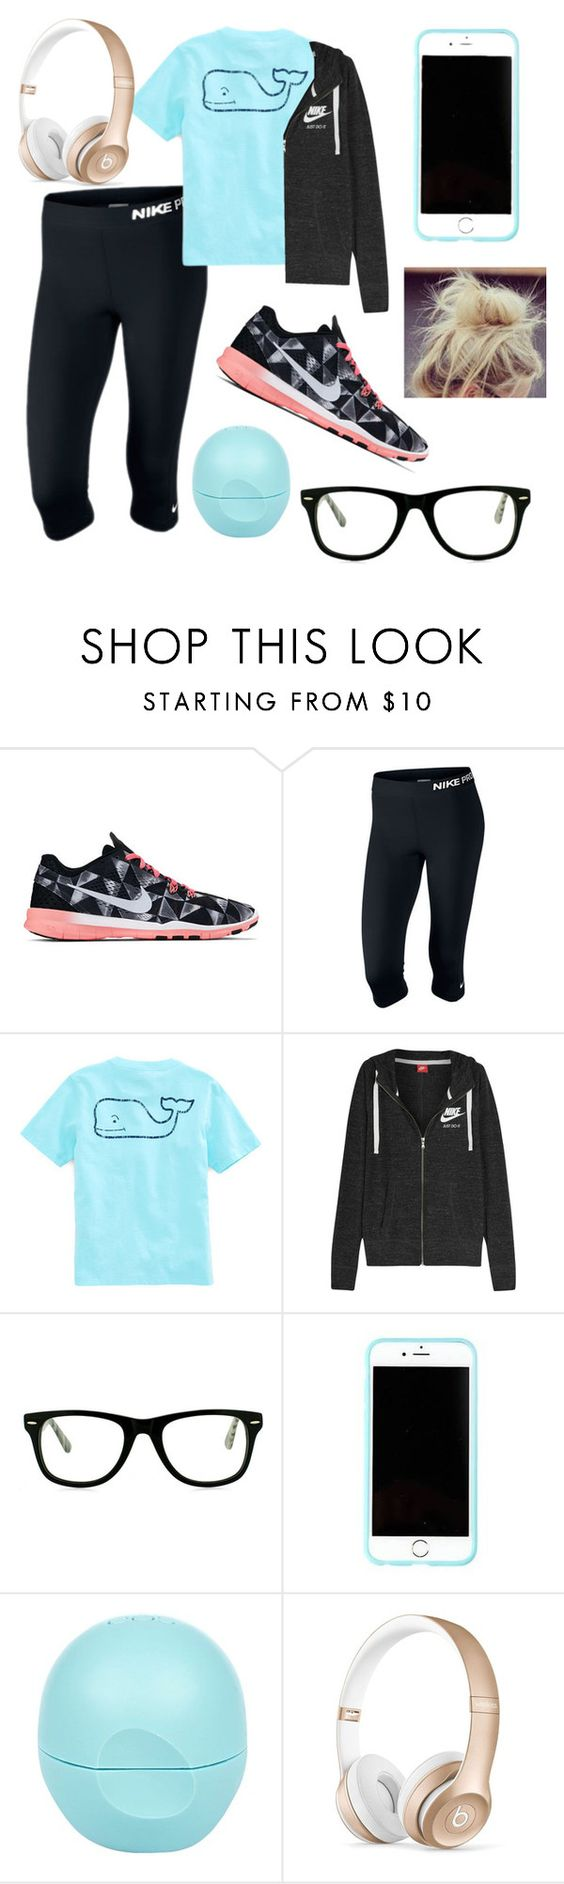 """""""Ootd! ↞ℒ℩Ⅴ℩↠"""" by oliviakatemullis ❤ liked on Polyvore featuring interior, interiors, interior design, home, home decor, interior decorating, NIKE, Vineyard Vines, Muse and Lilly Pulitzer"""